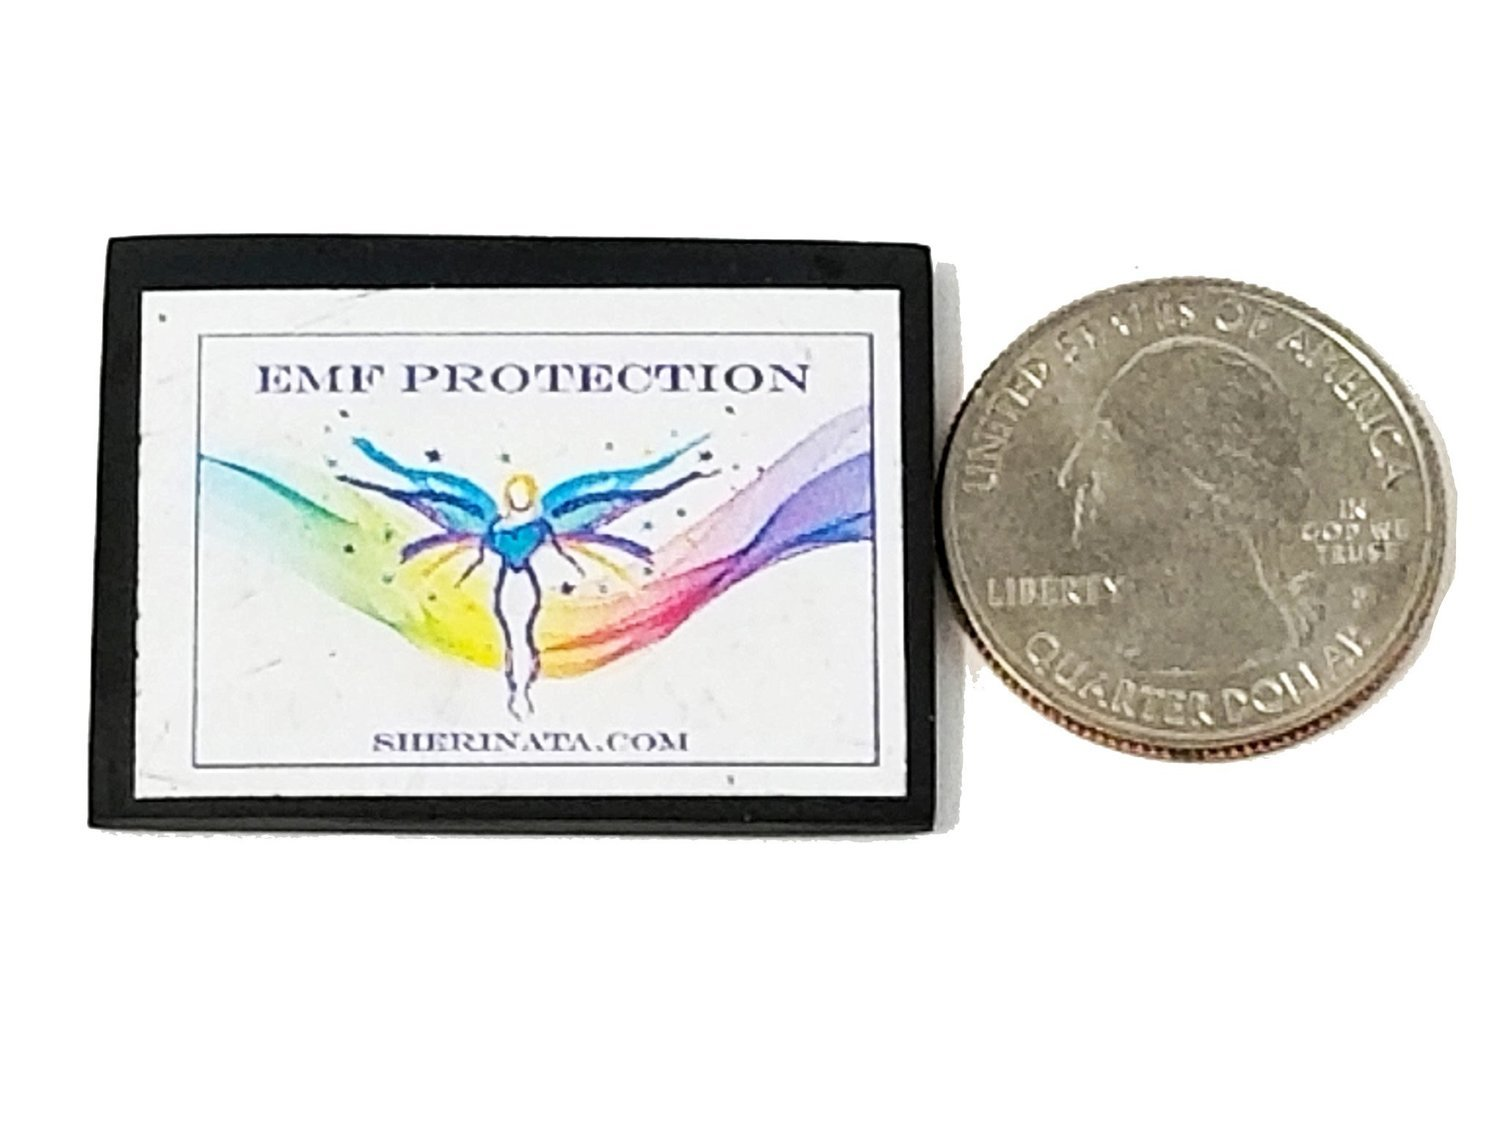 EMF Protection Electronic Mini Plate - For Electronic Devices